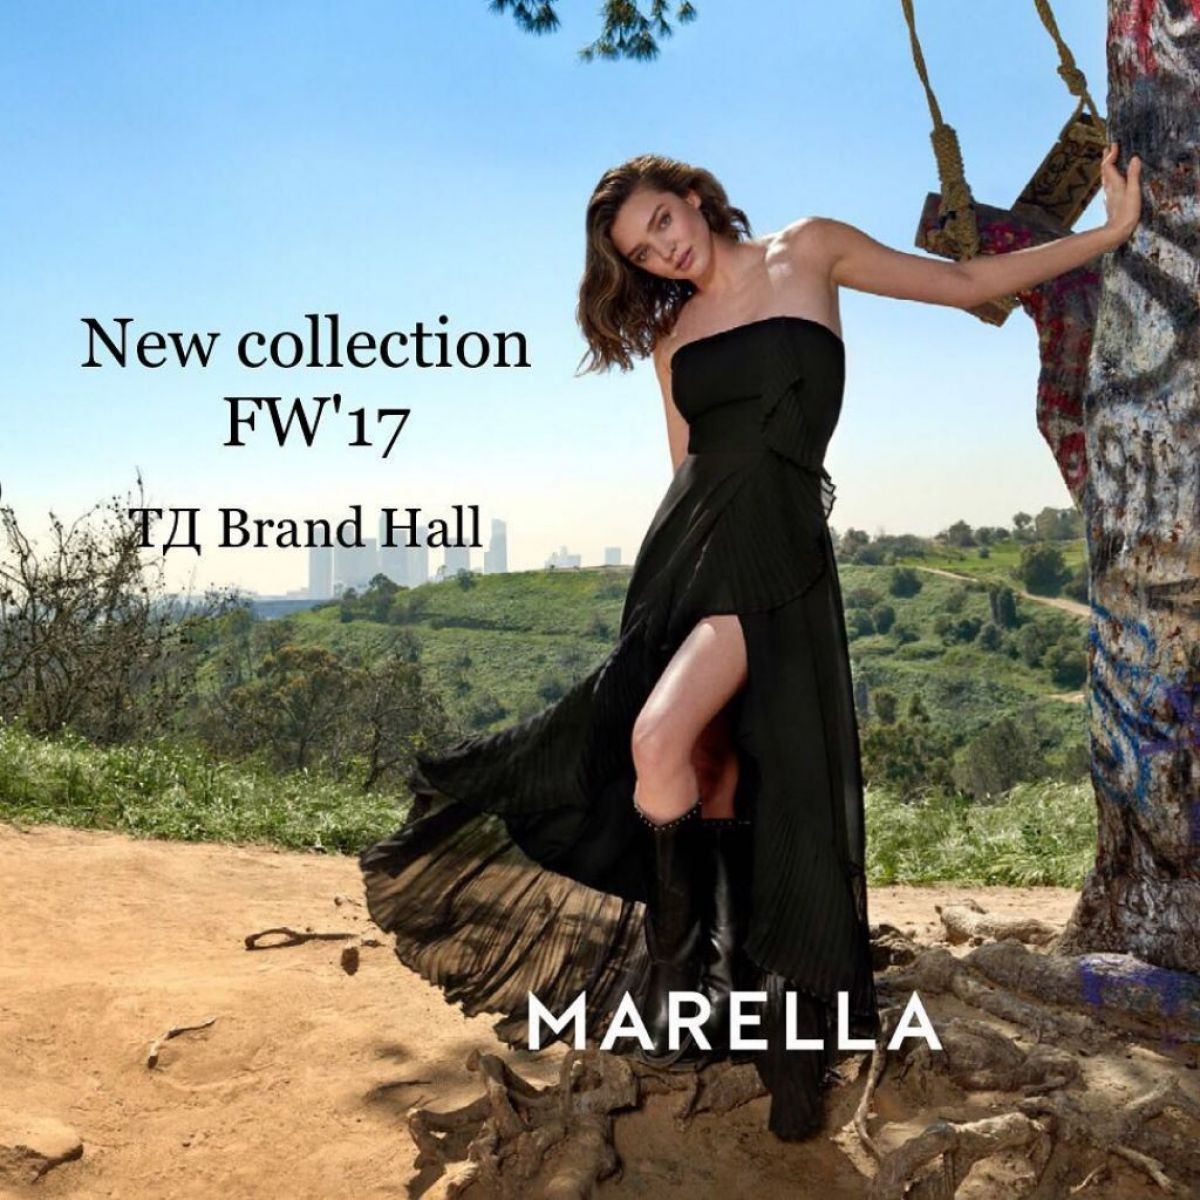 Miranda Kerr stars in the Marella Fall/Winter 2017 Campaign